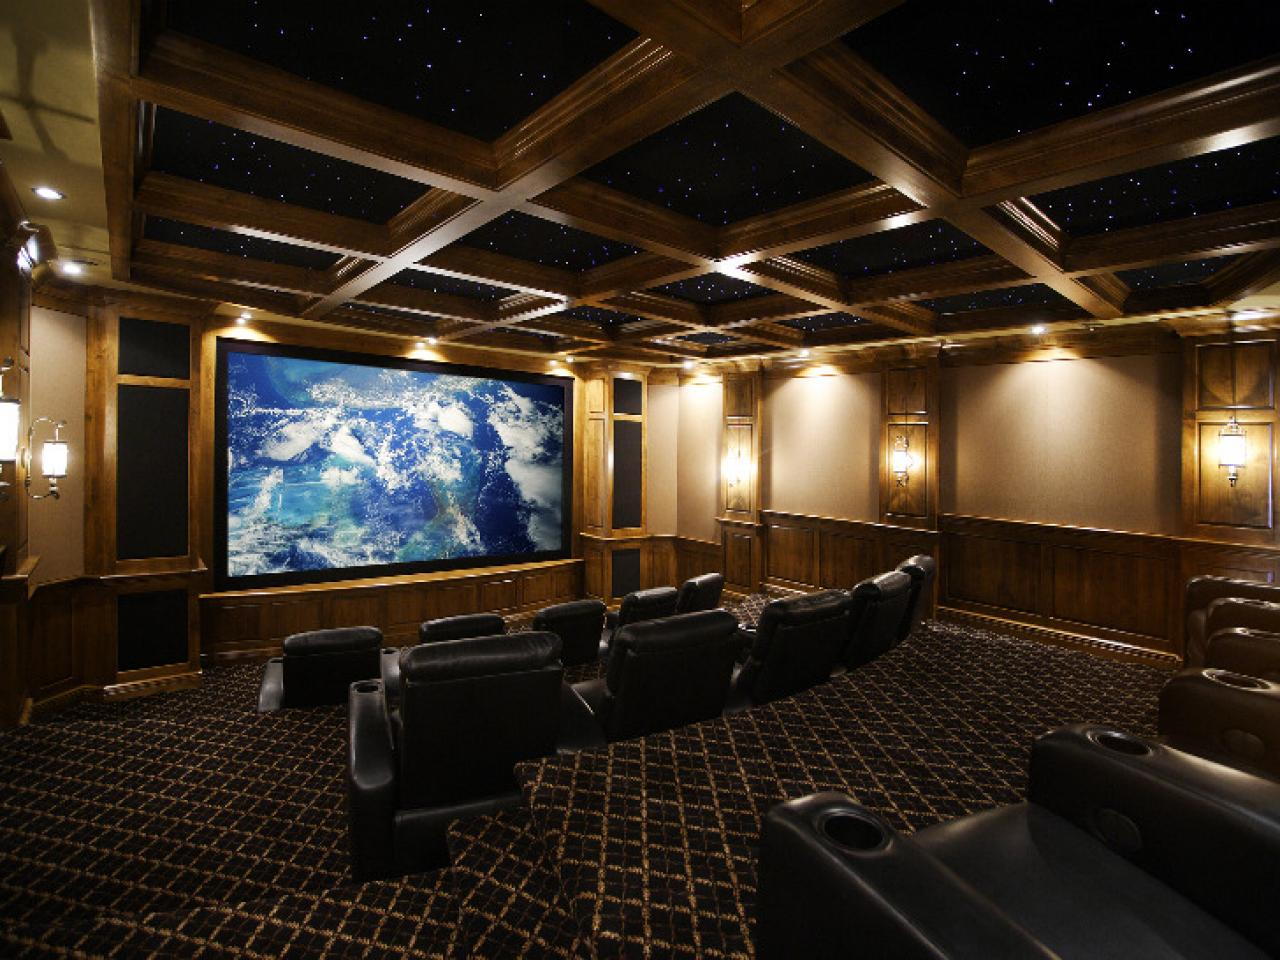 Home Theater Design Ideas Pictures Tips amp Options HGTV